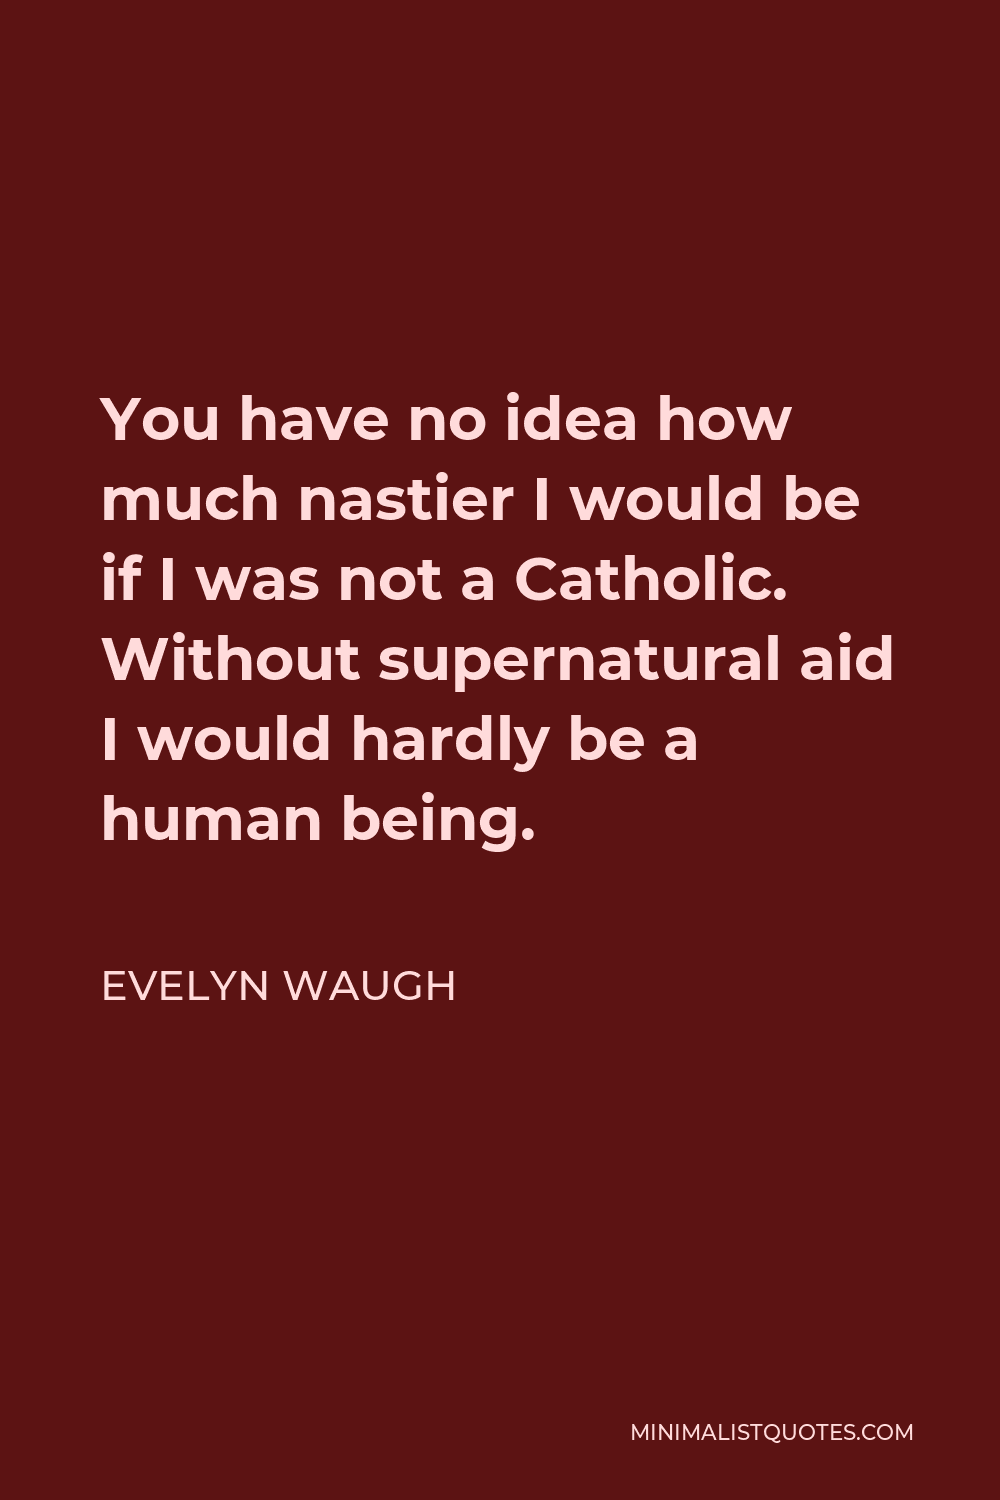 Evelyn Waugh Quote - You have no idea how much nastier I would be if I was not a Catholic. Without supernatural aid I would hardly be a human being.